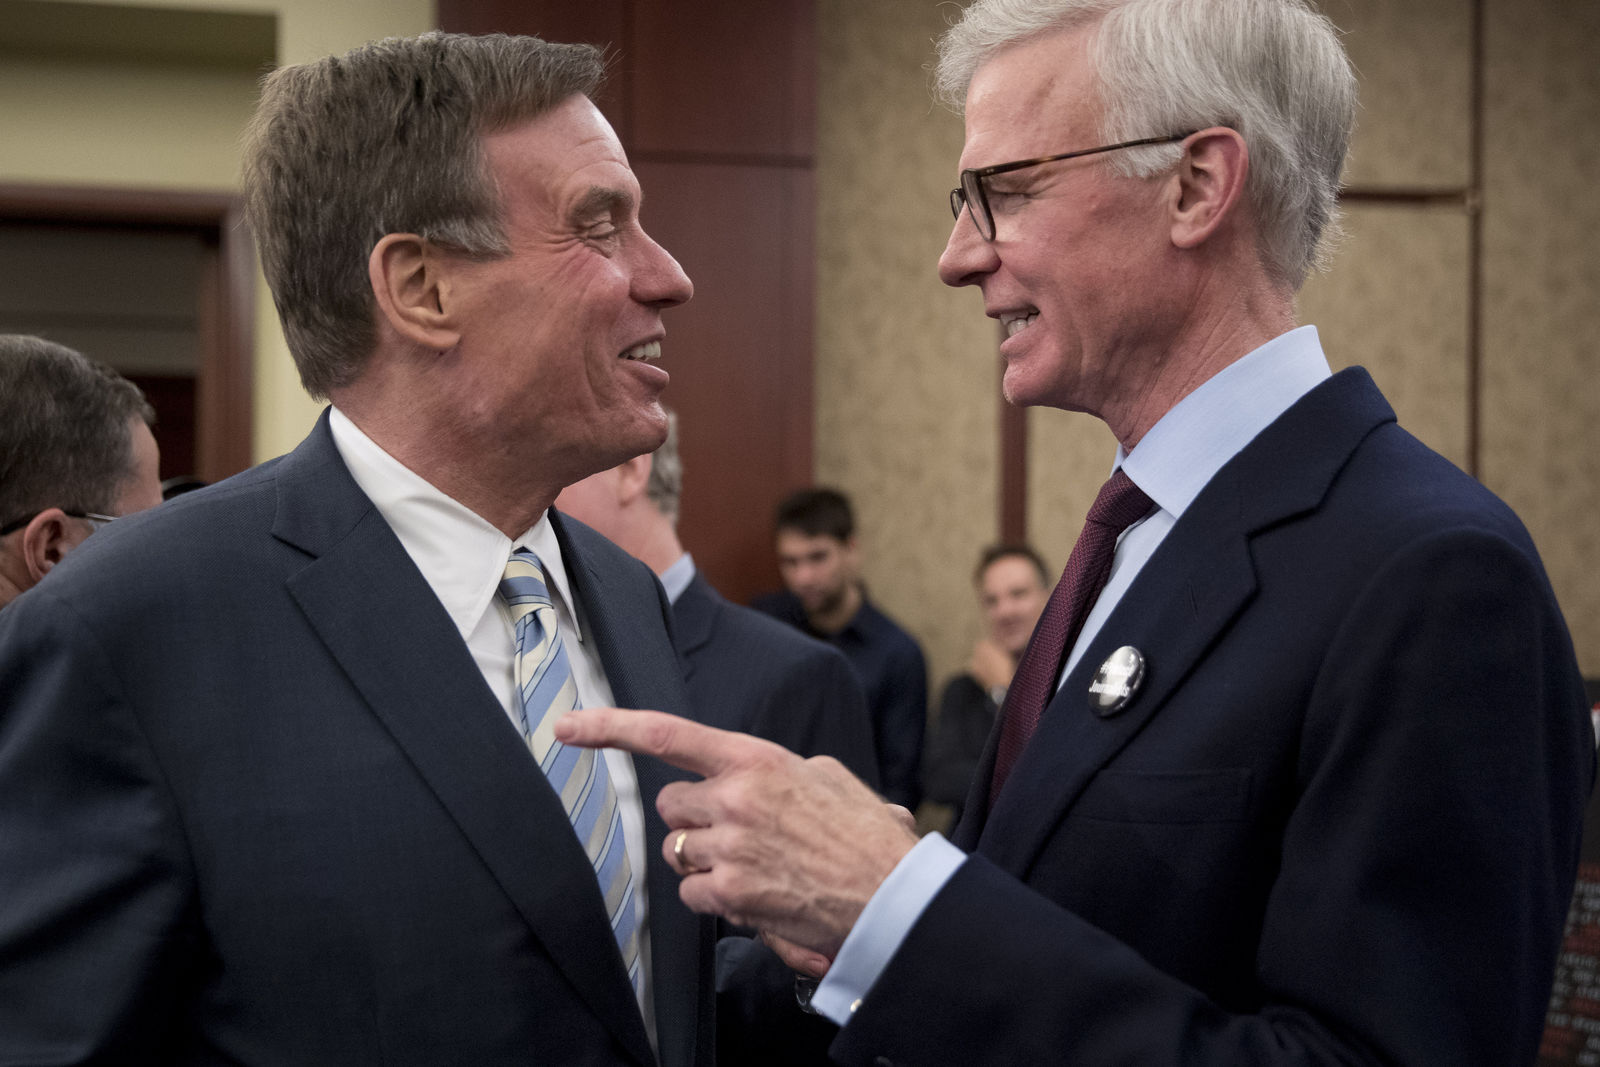 Sen. Mark Warner, D-Va., left, speaks with Washington Post Publisher Fred Ryan, right, at an event marking 100 days since the death of Jamal Khashoggi on Capitol Hill in Washington, Thursday, Jan. 10, 2019. Amnesty International on Thursday renewed a call for an international investigation into the killing of Washington Post columnist Jamal Khashoggi. (AP Photo/Andrew Harnik)